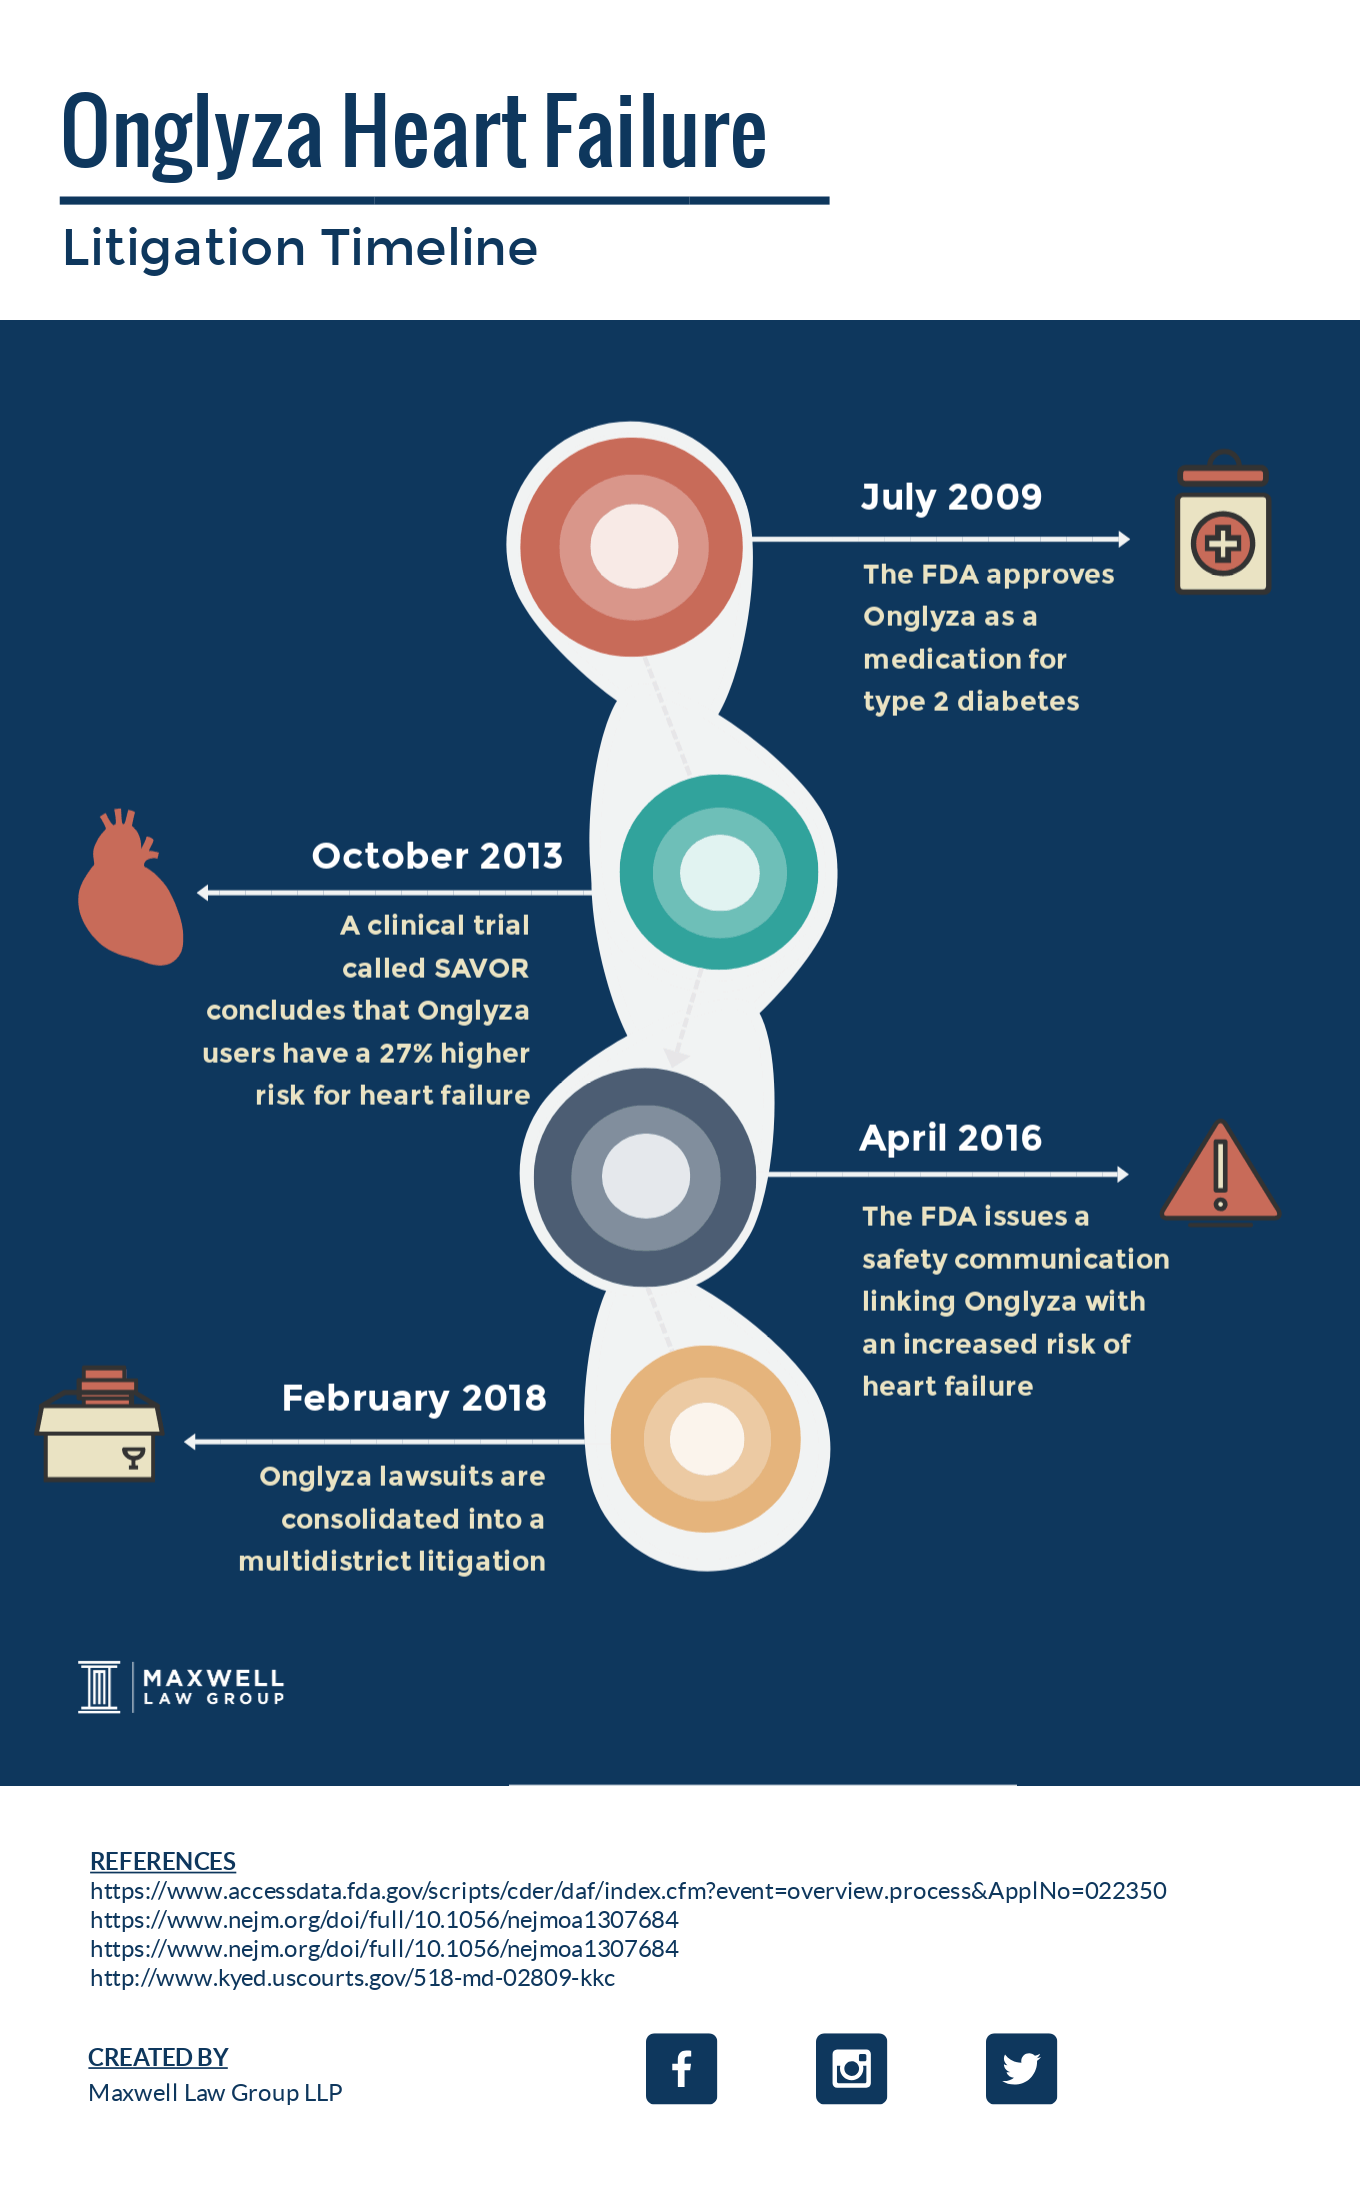 onglyza litigation timeline